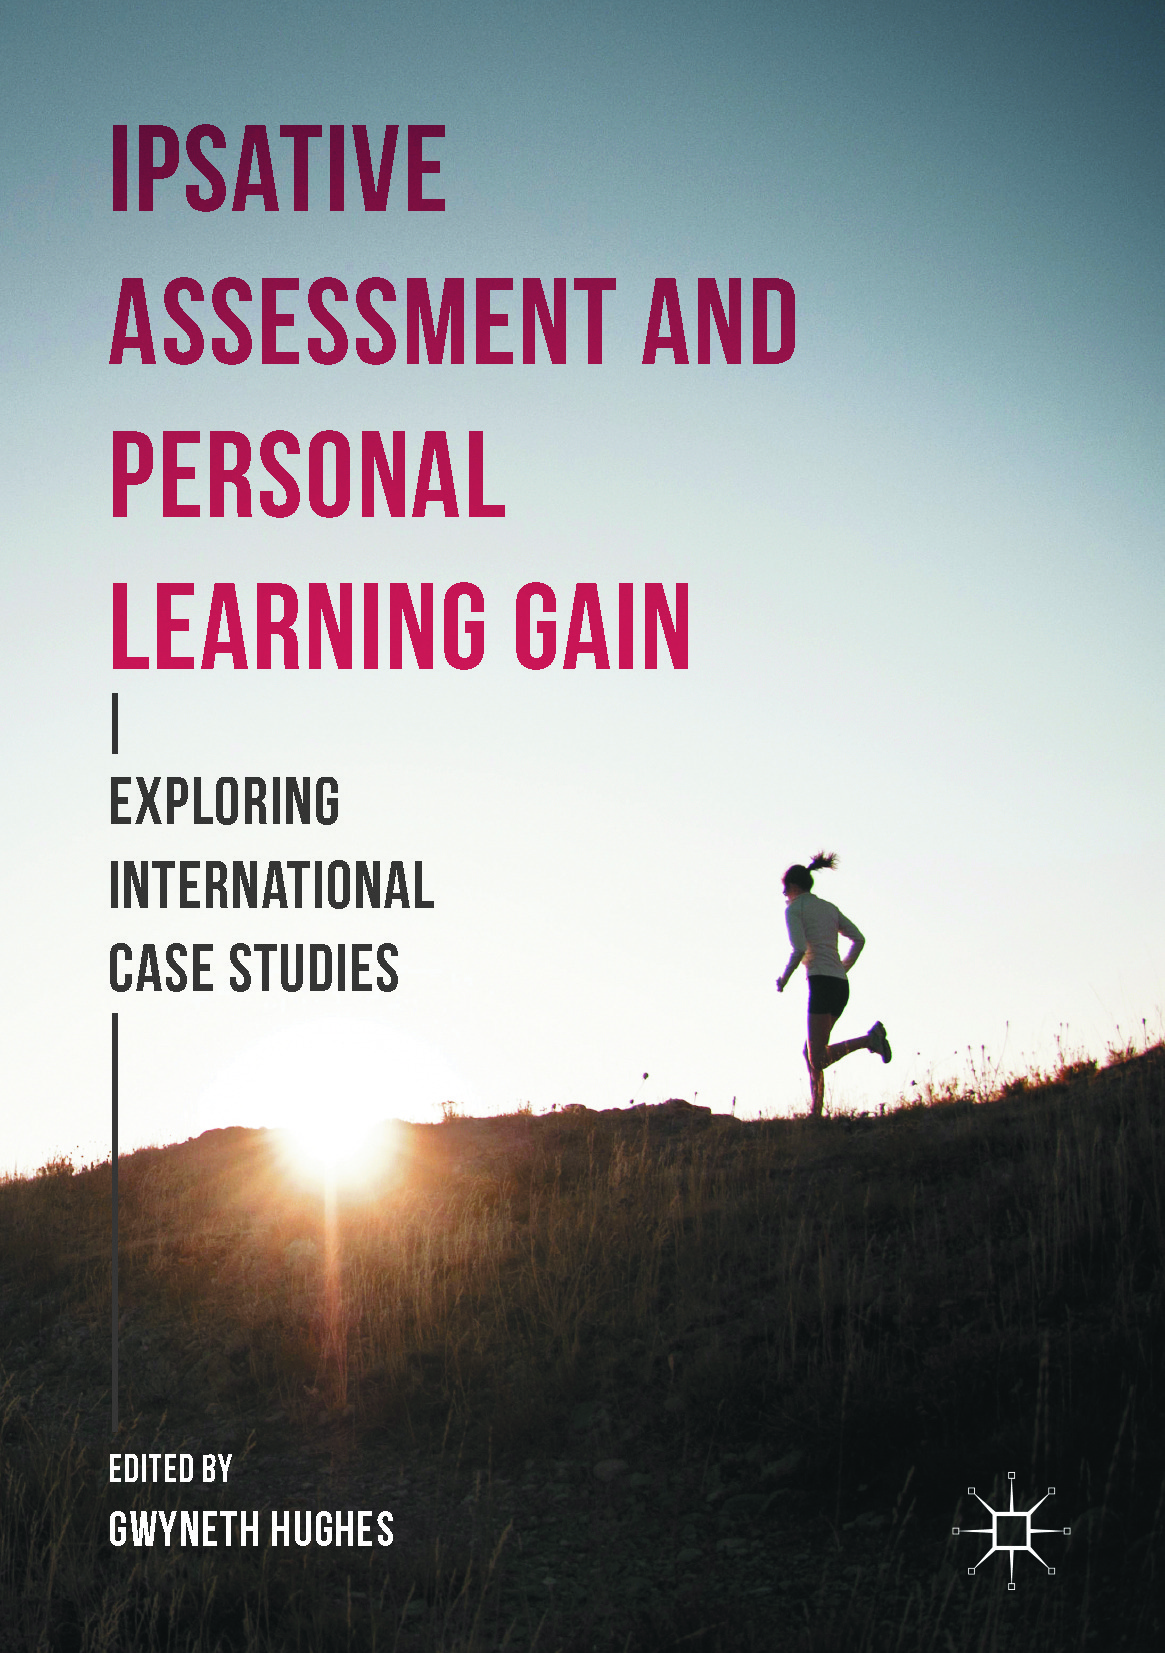 Hughes, Gwyneth - Ipsative Assessment and Personal Learning Gain, ebook